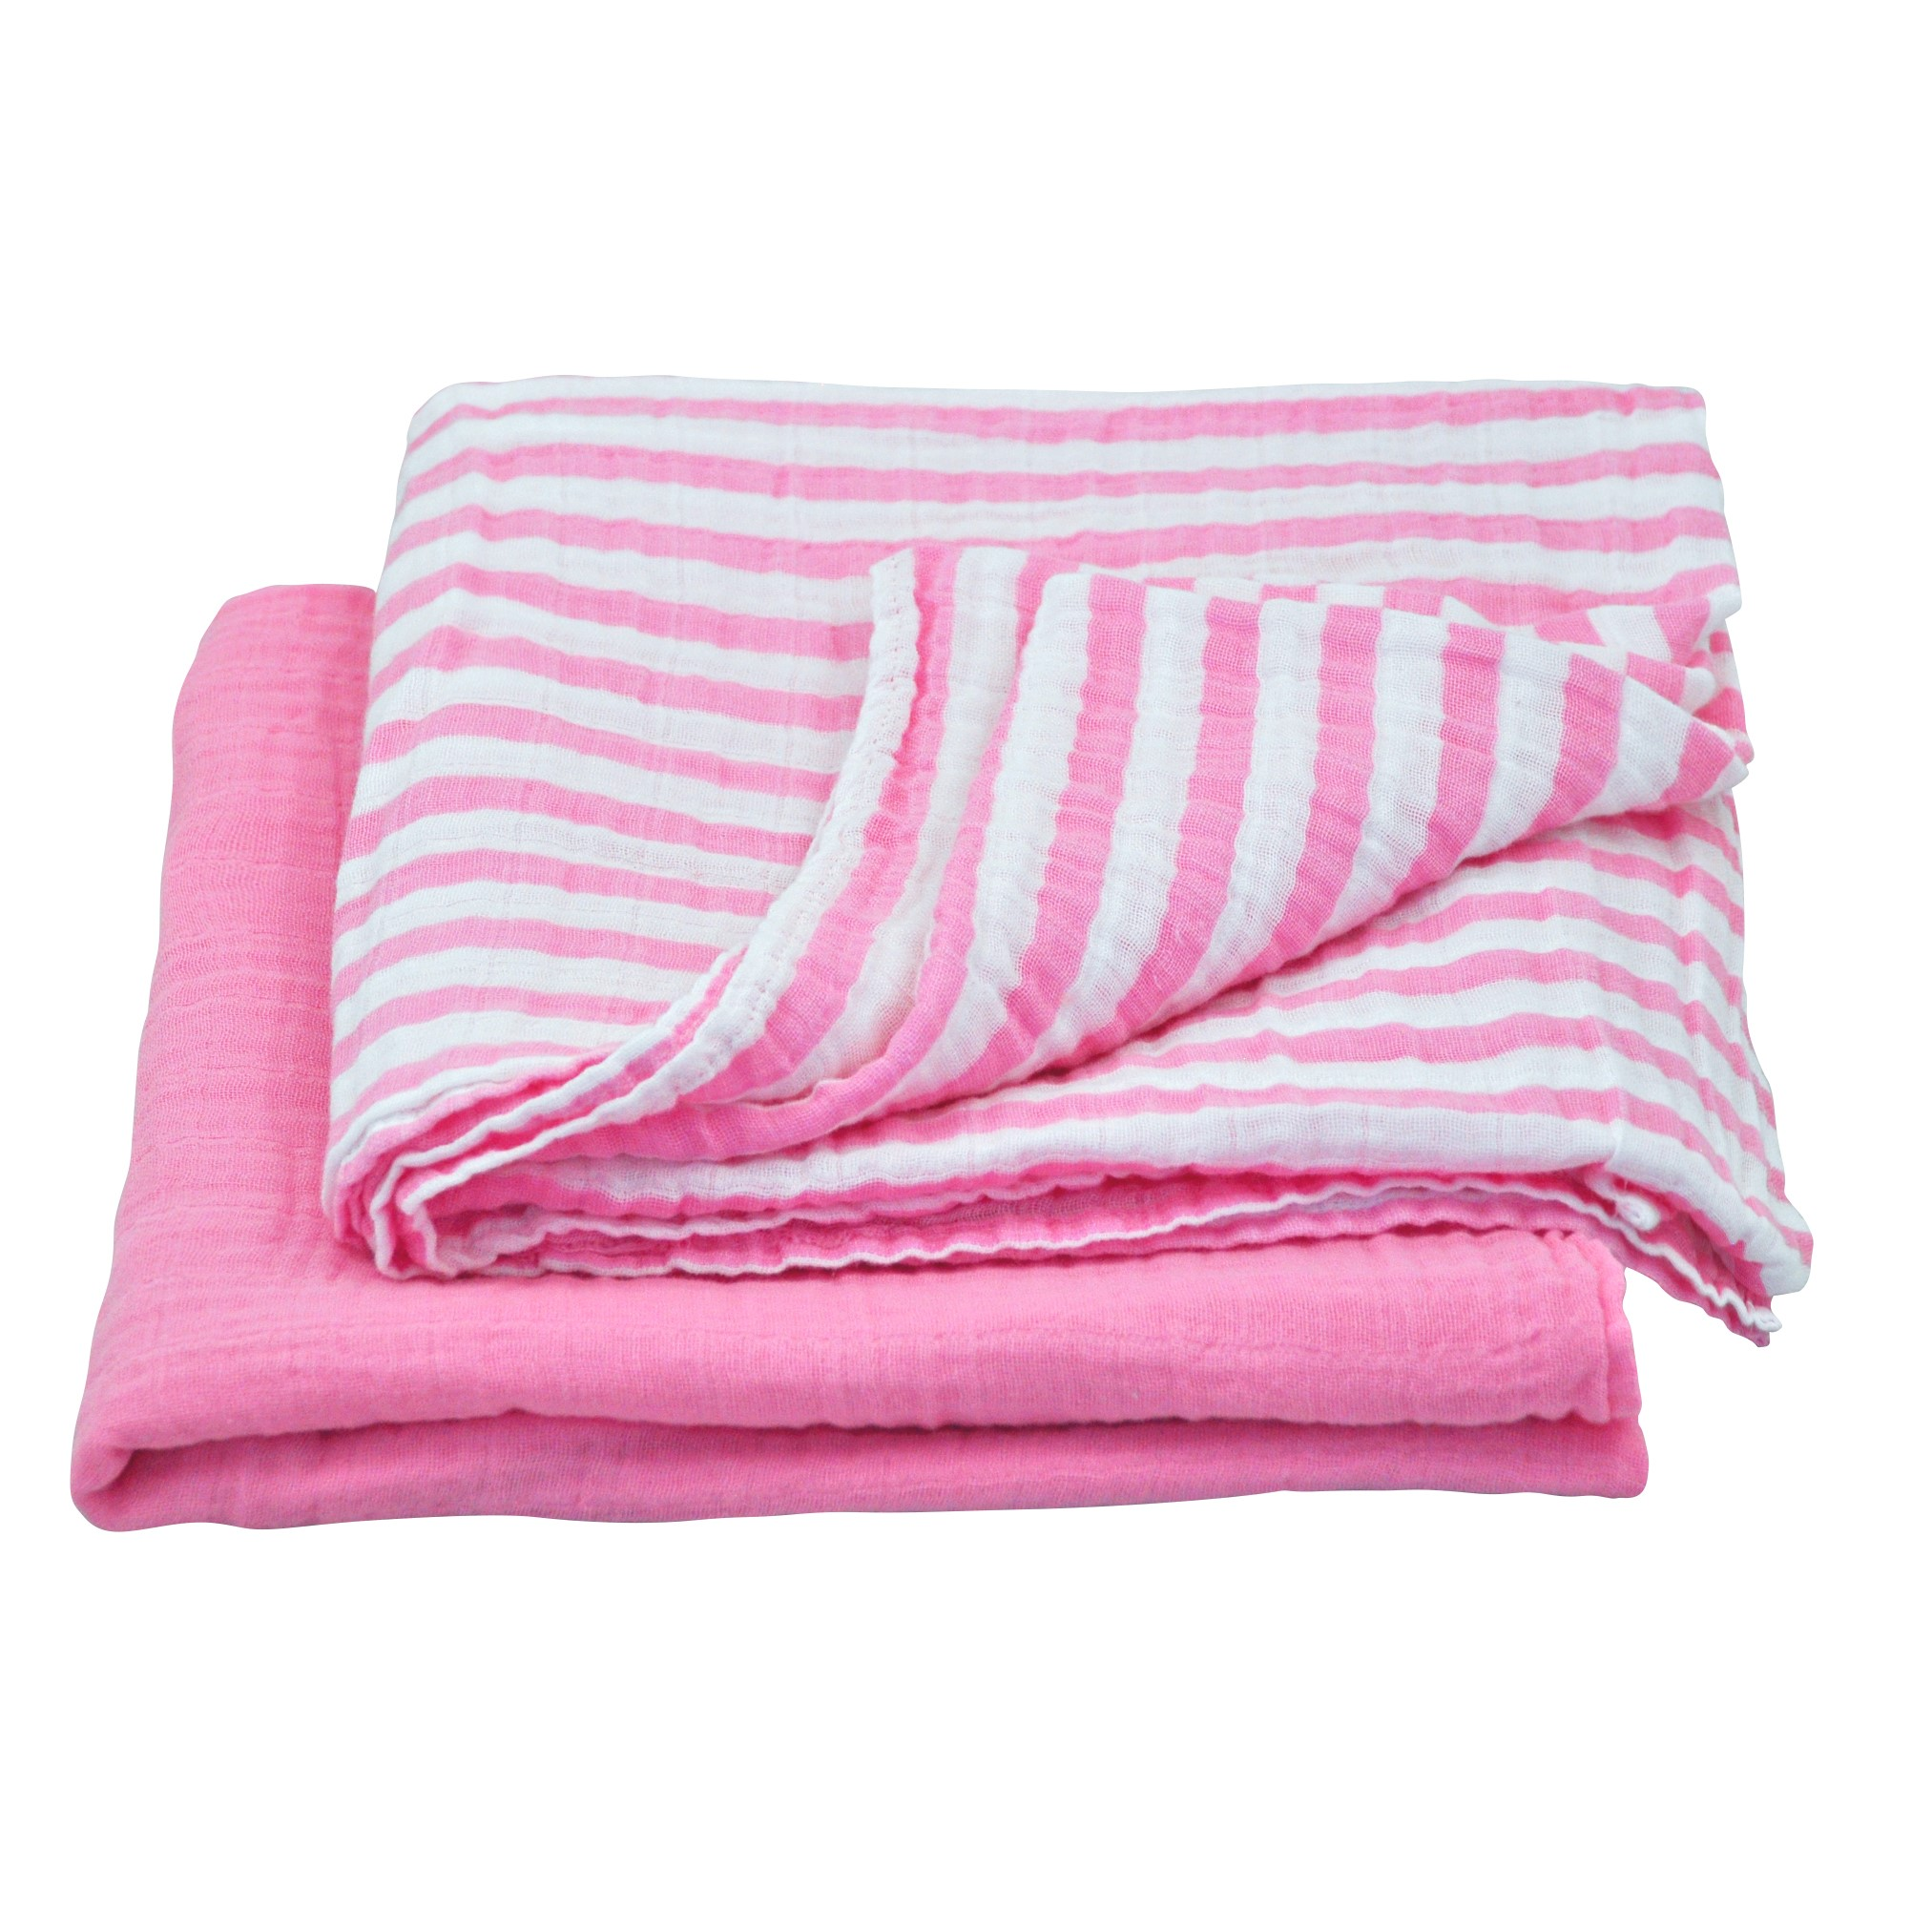 "green sprouts Muslin Swaddle Blanket made from Organic Cotton-Light Pink Set-44"" x 44"""